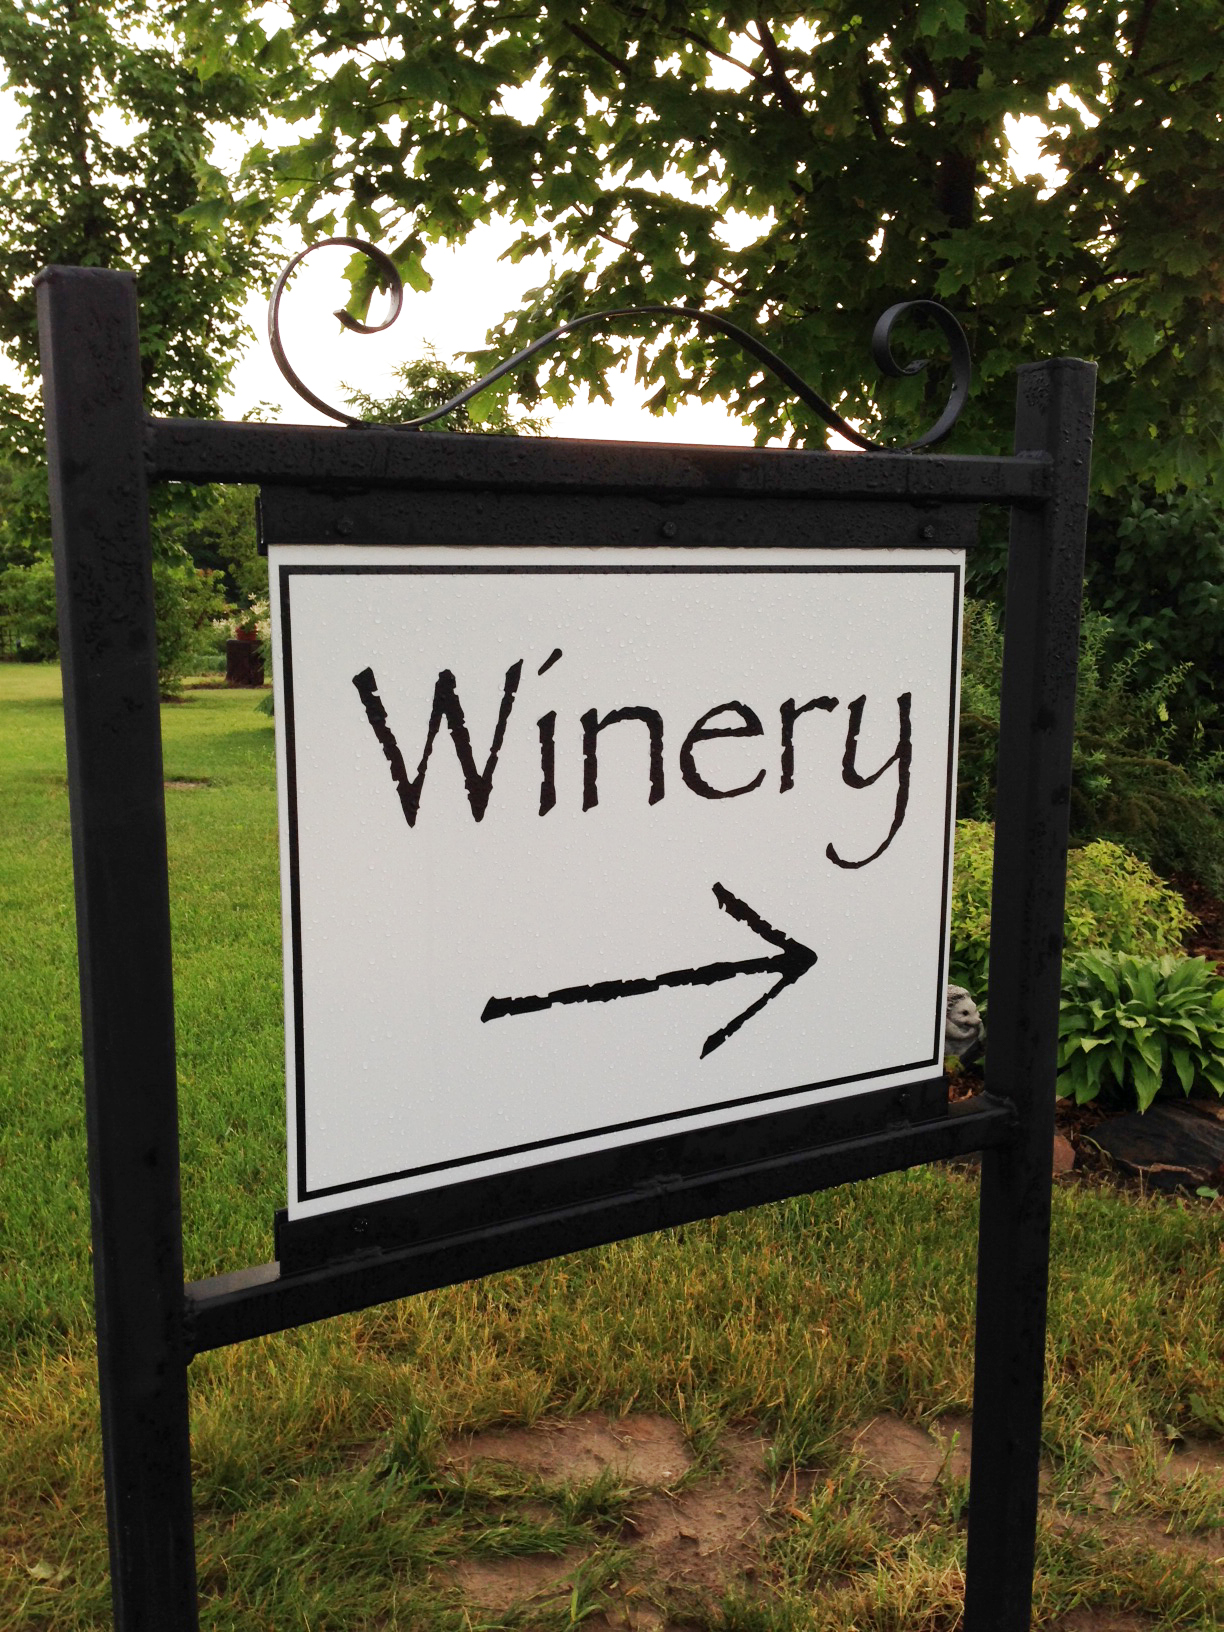 An afternoon at the Winery